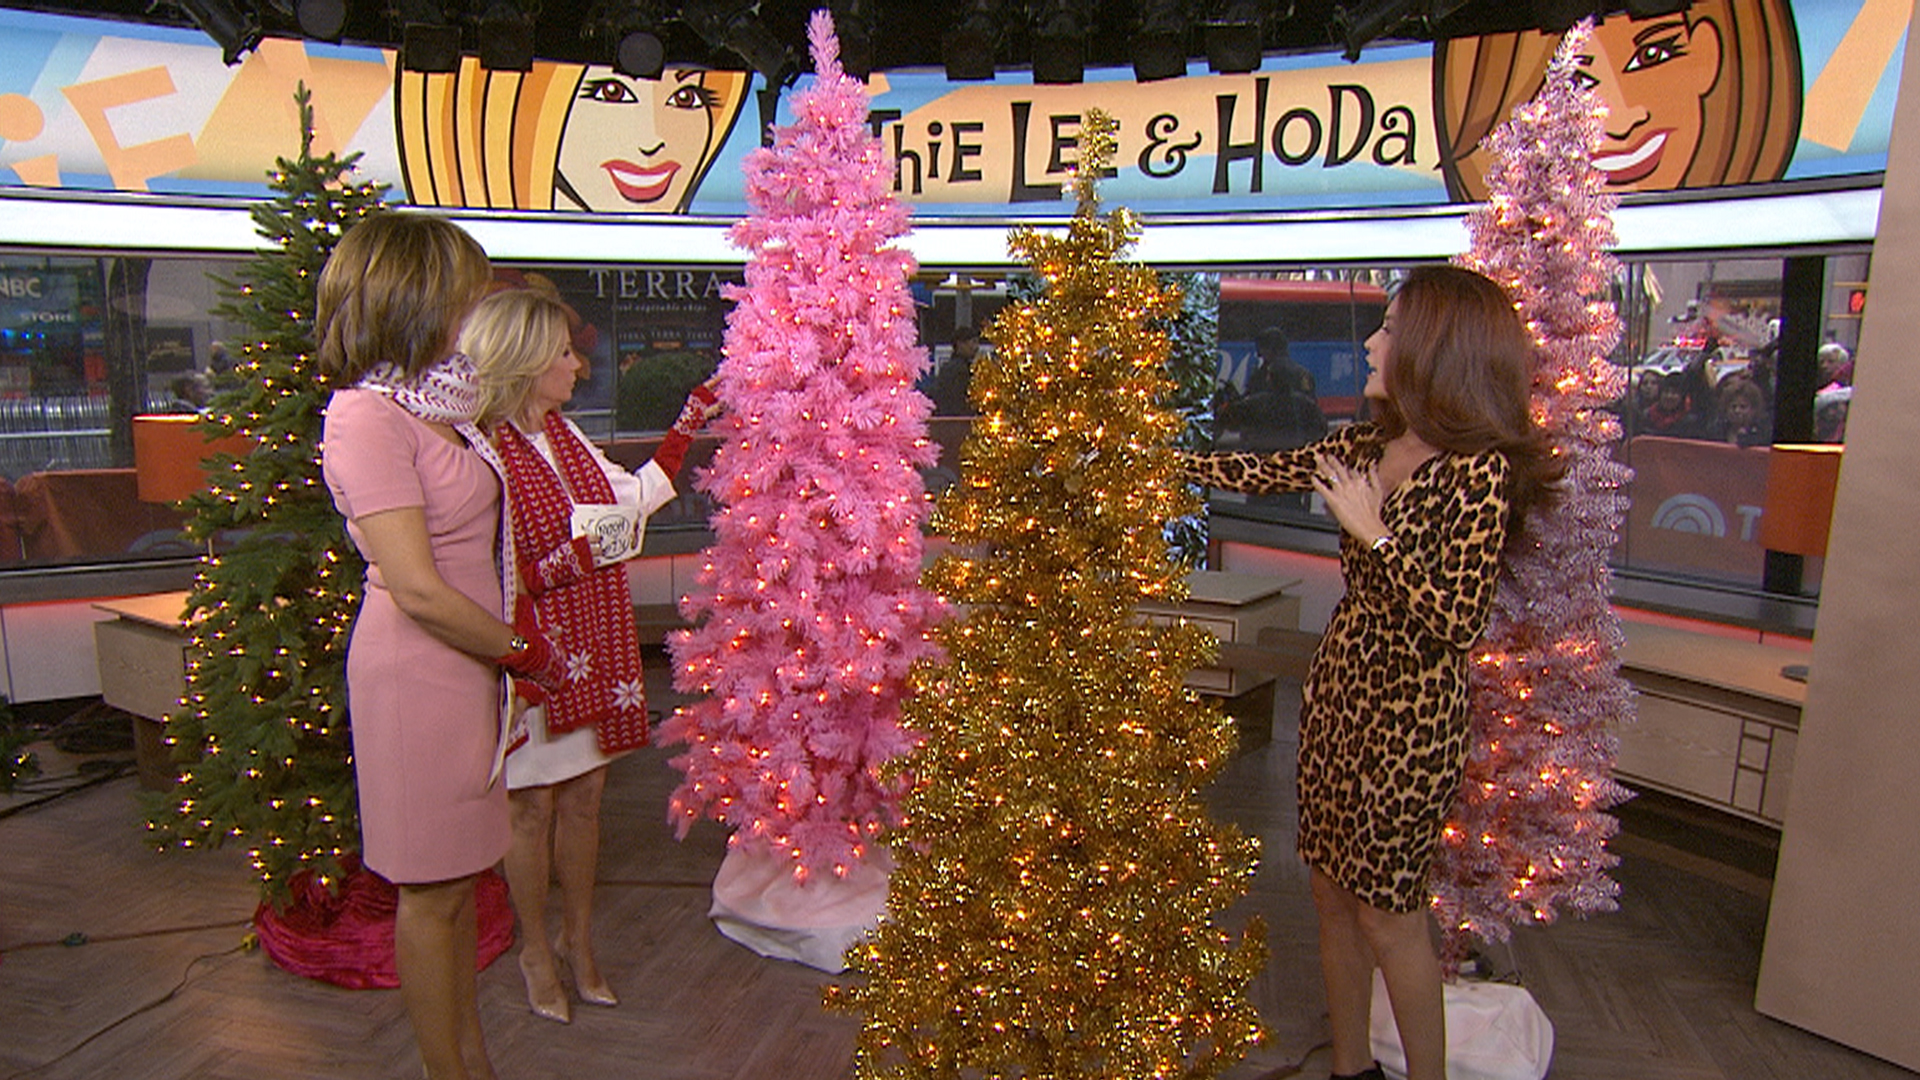 Christmas decorations: Artificial Christmas trees that are on sale